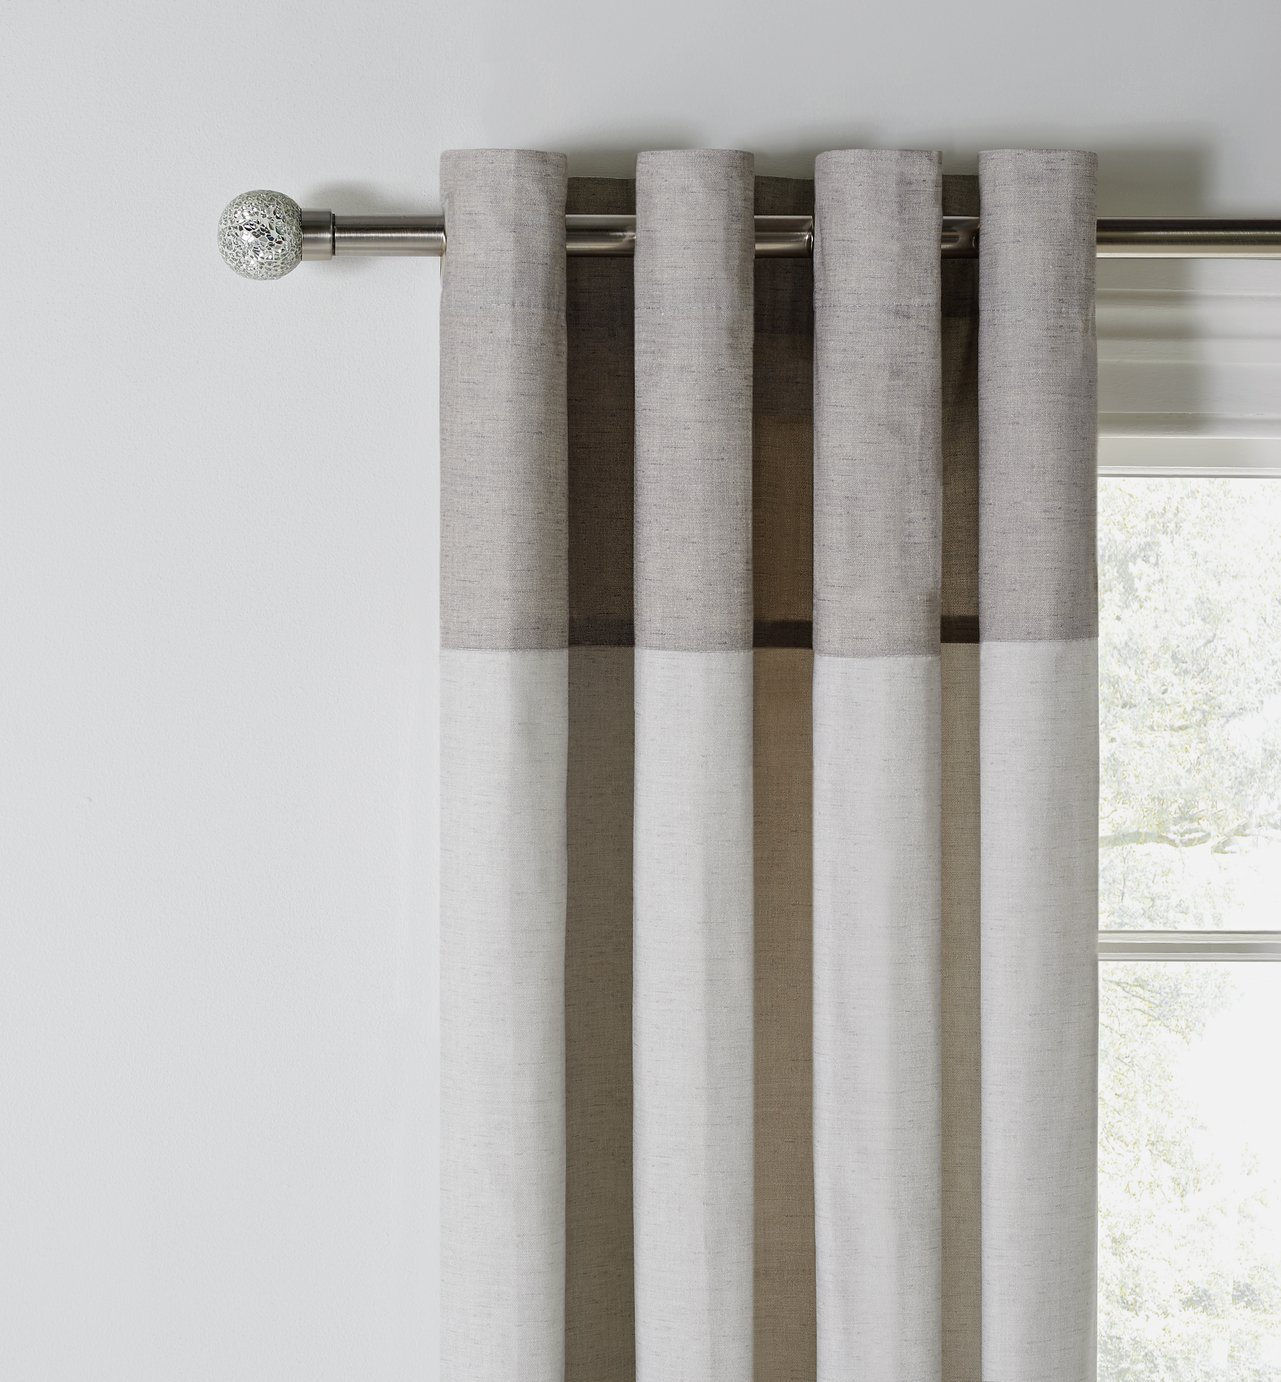 Argos Home Dublin Unlined Curtains review